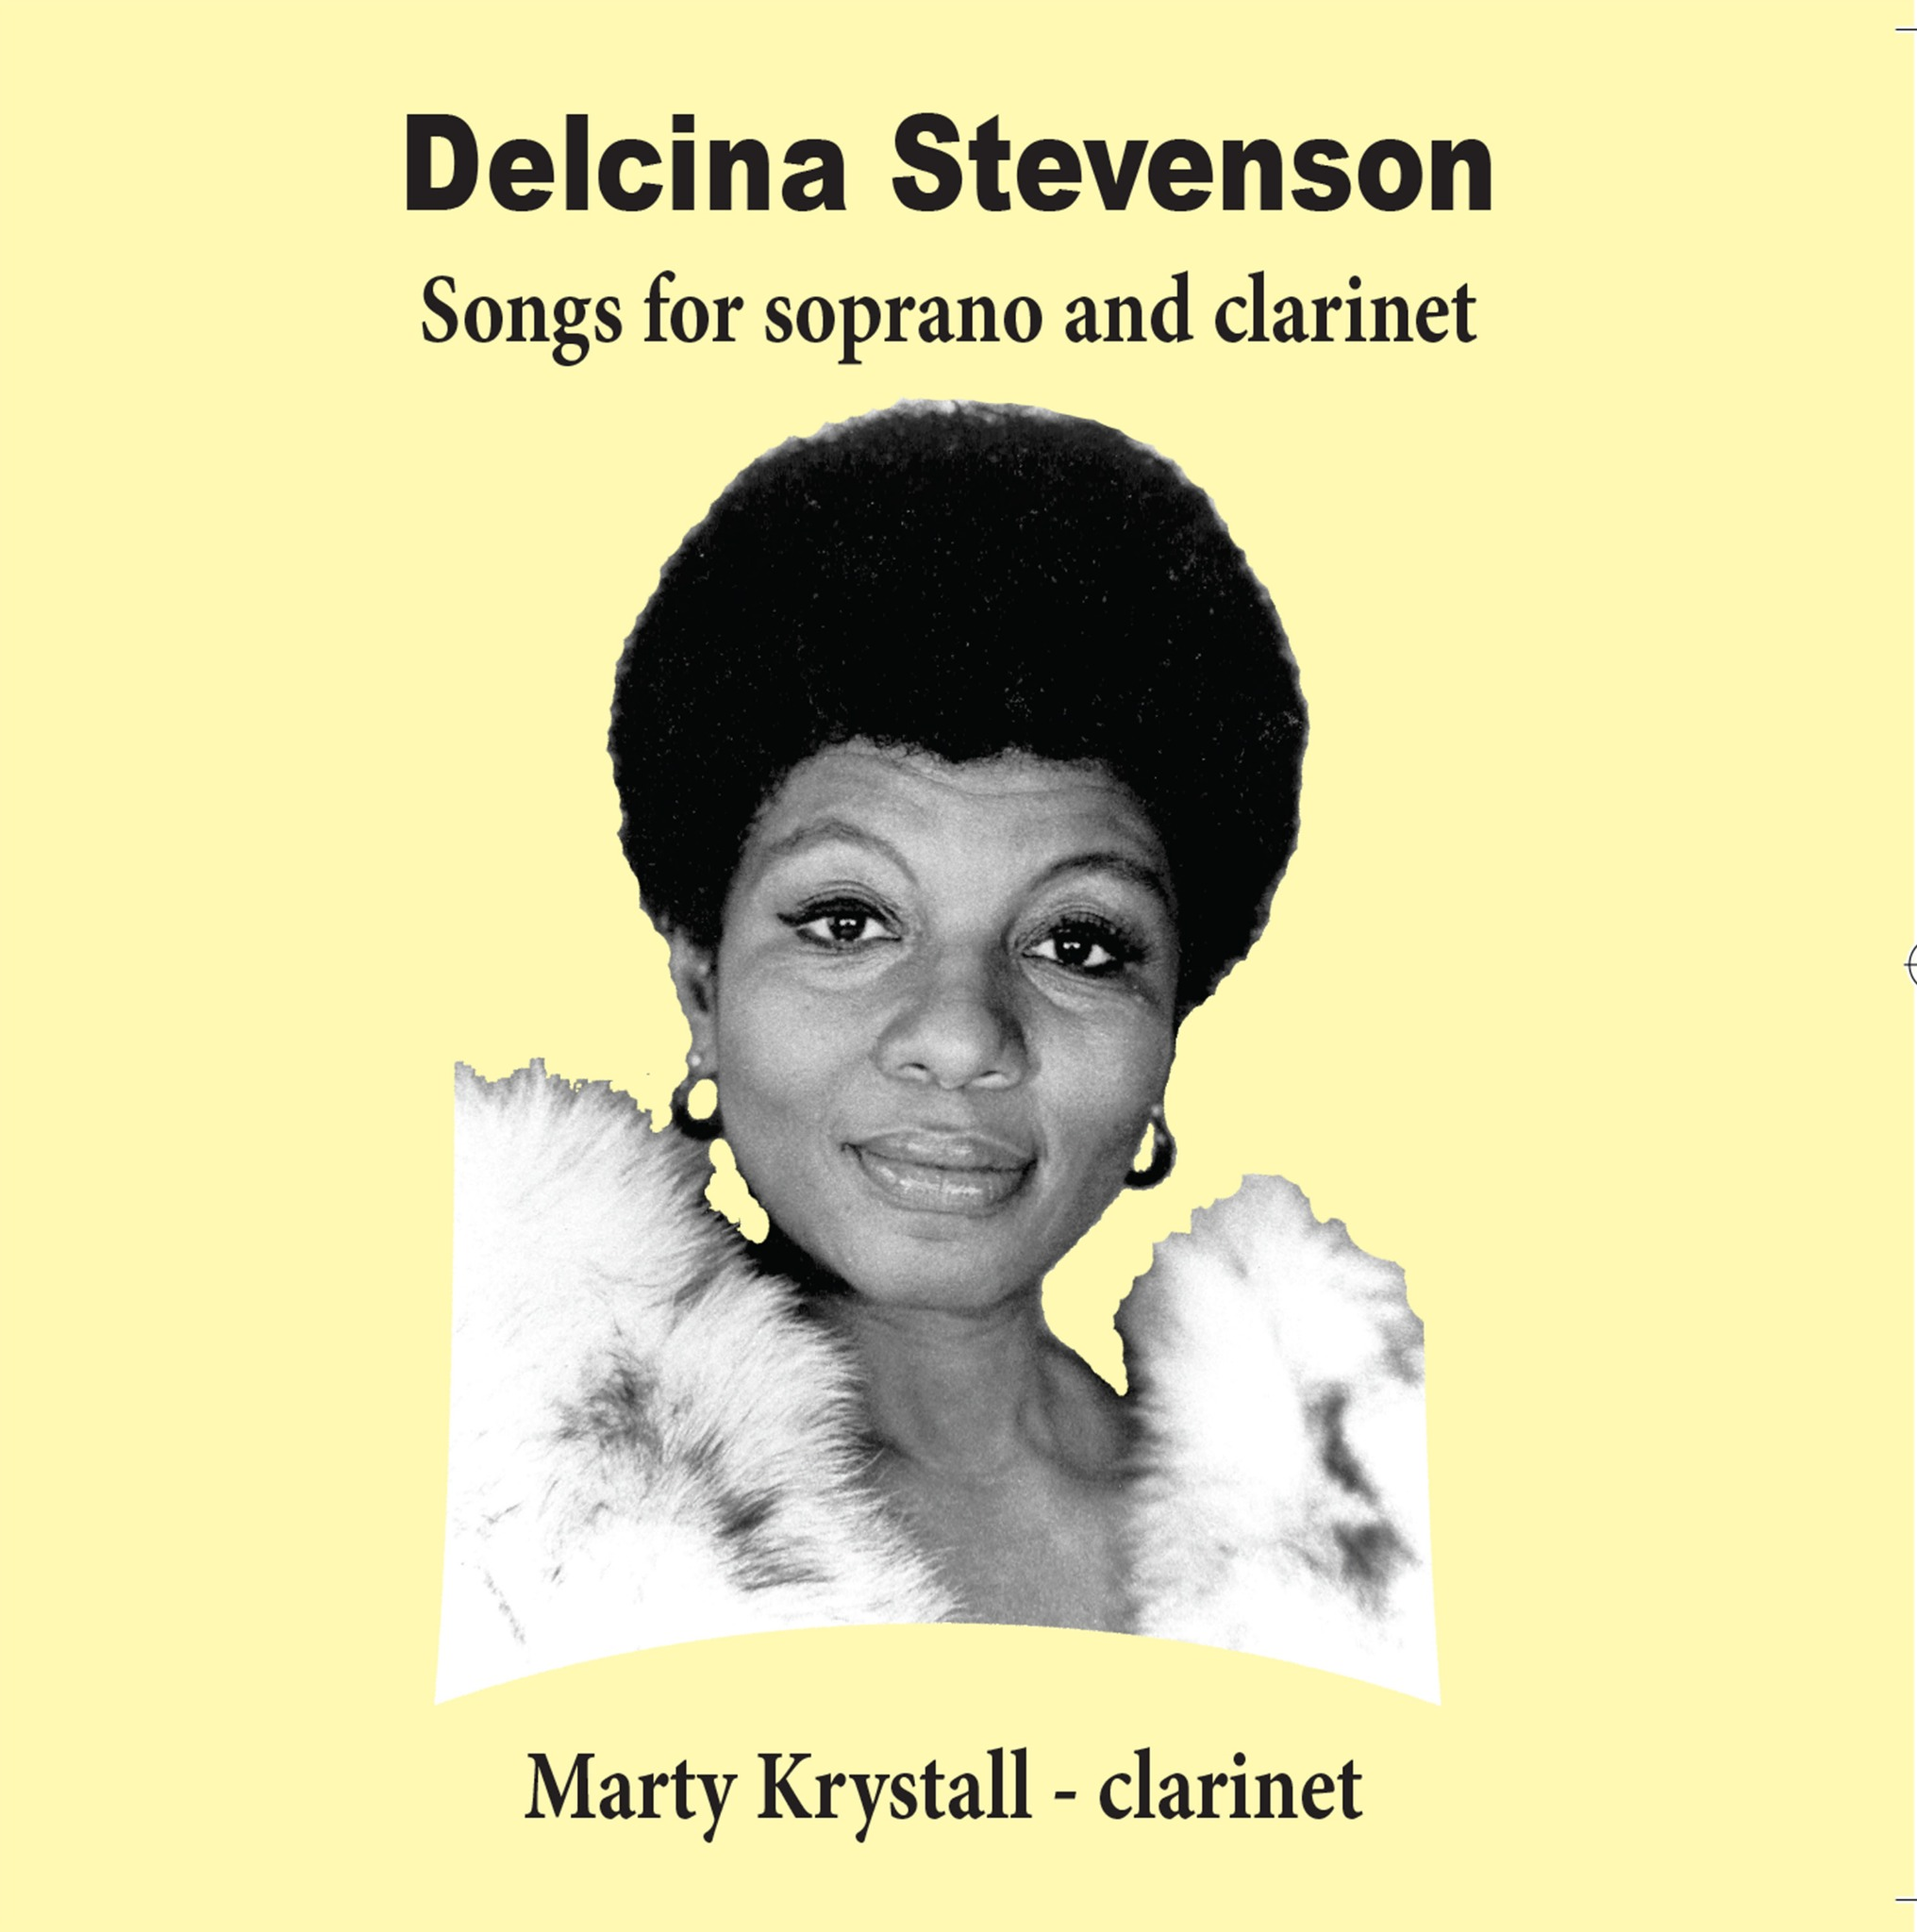 Songs For Soprano and Clarinet - Delcina Stevenson / Marty Krystall (44.1-16 FLAC)